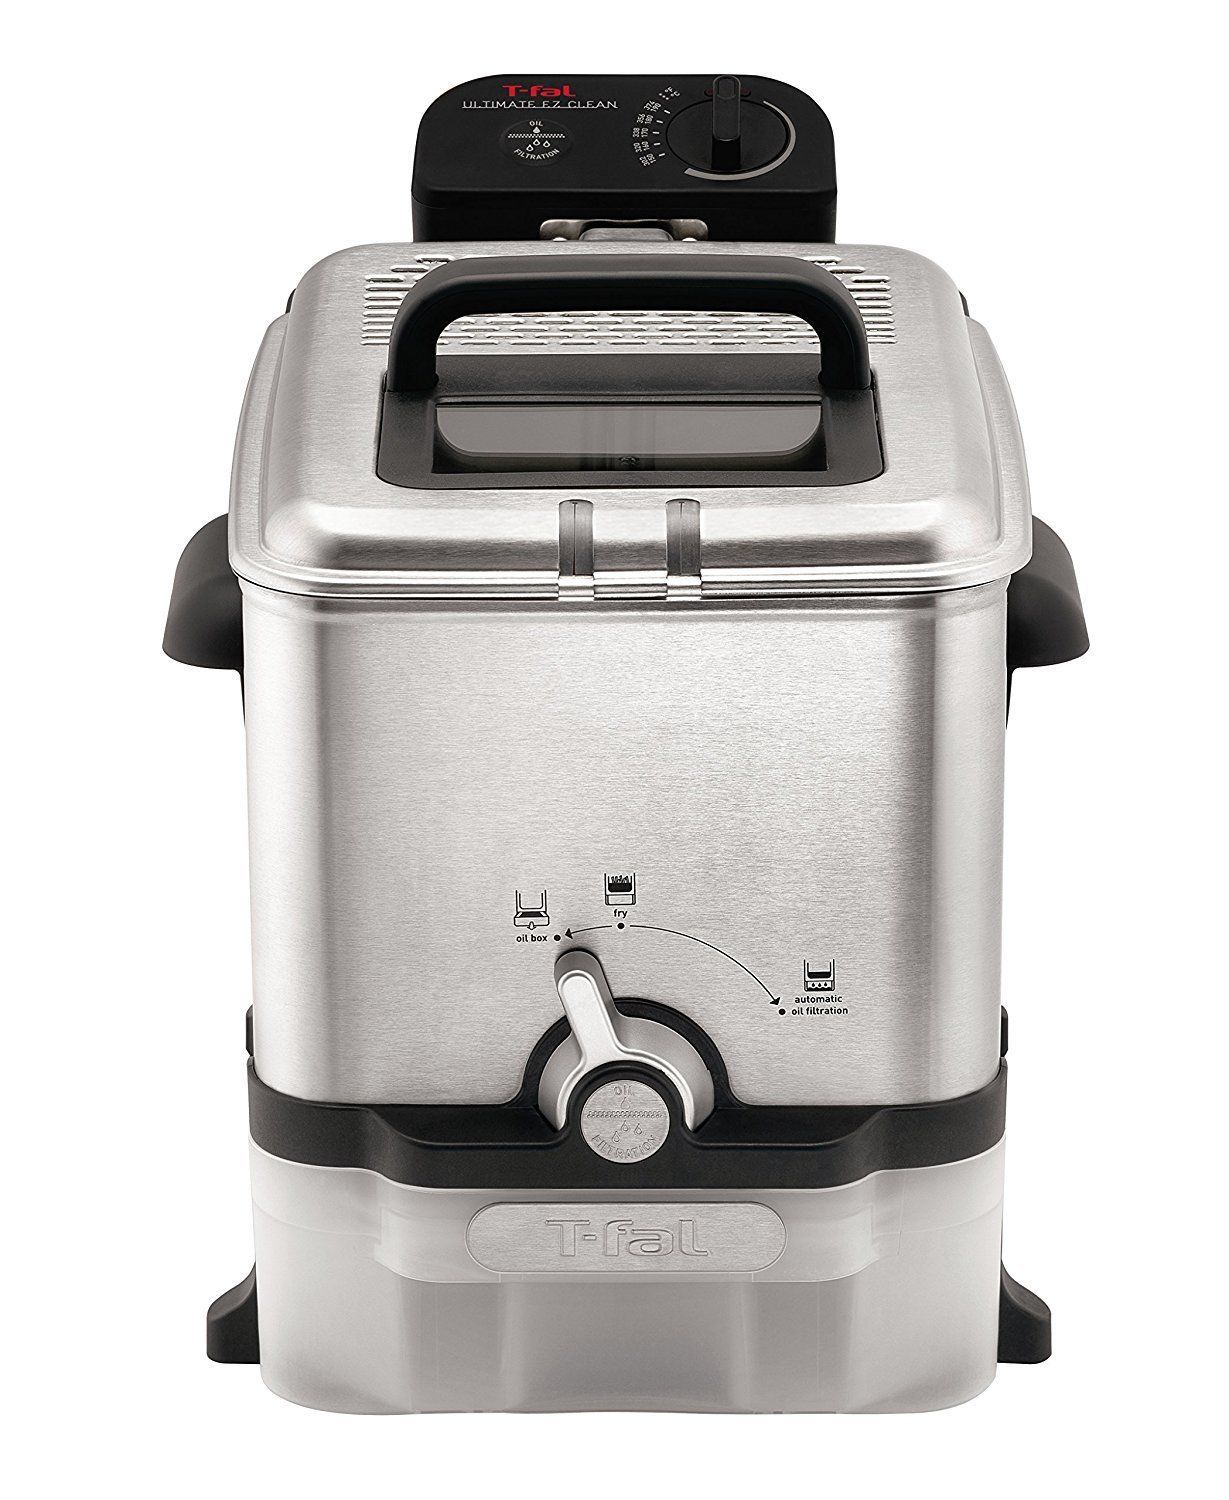 Deep Fryer Electric Commercial Restaurant Stainless Steel